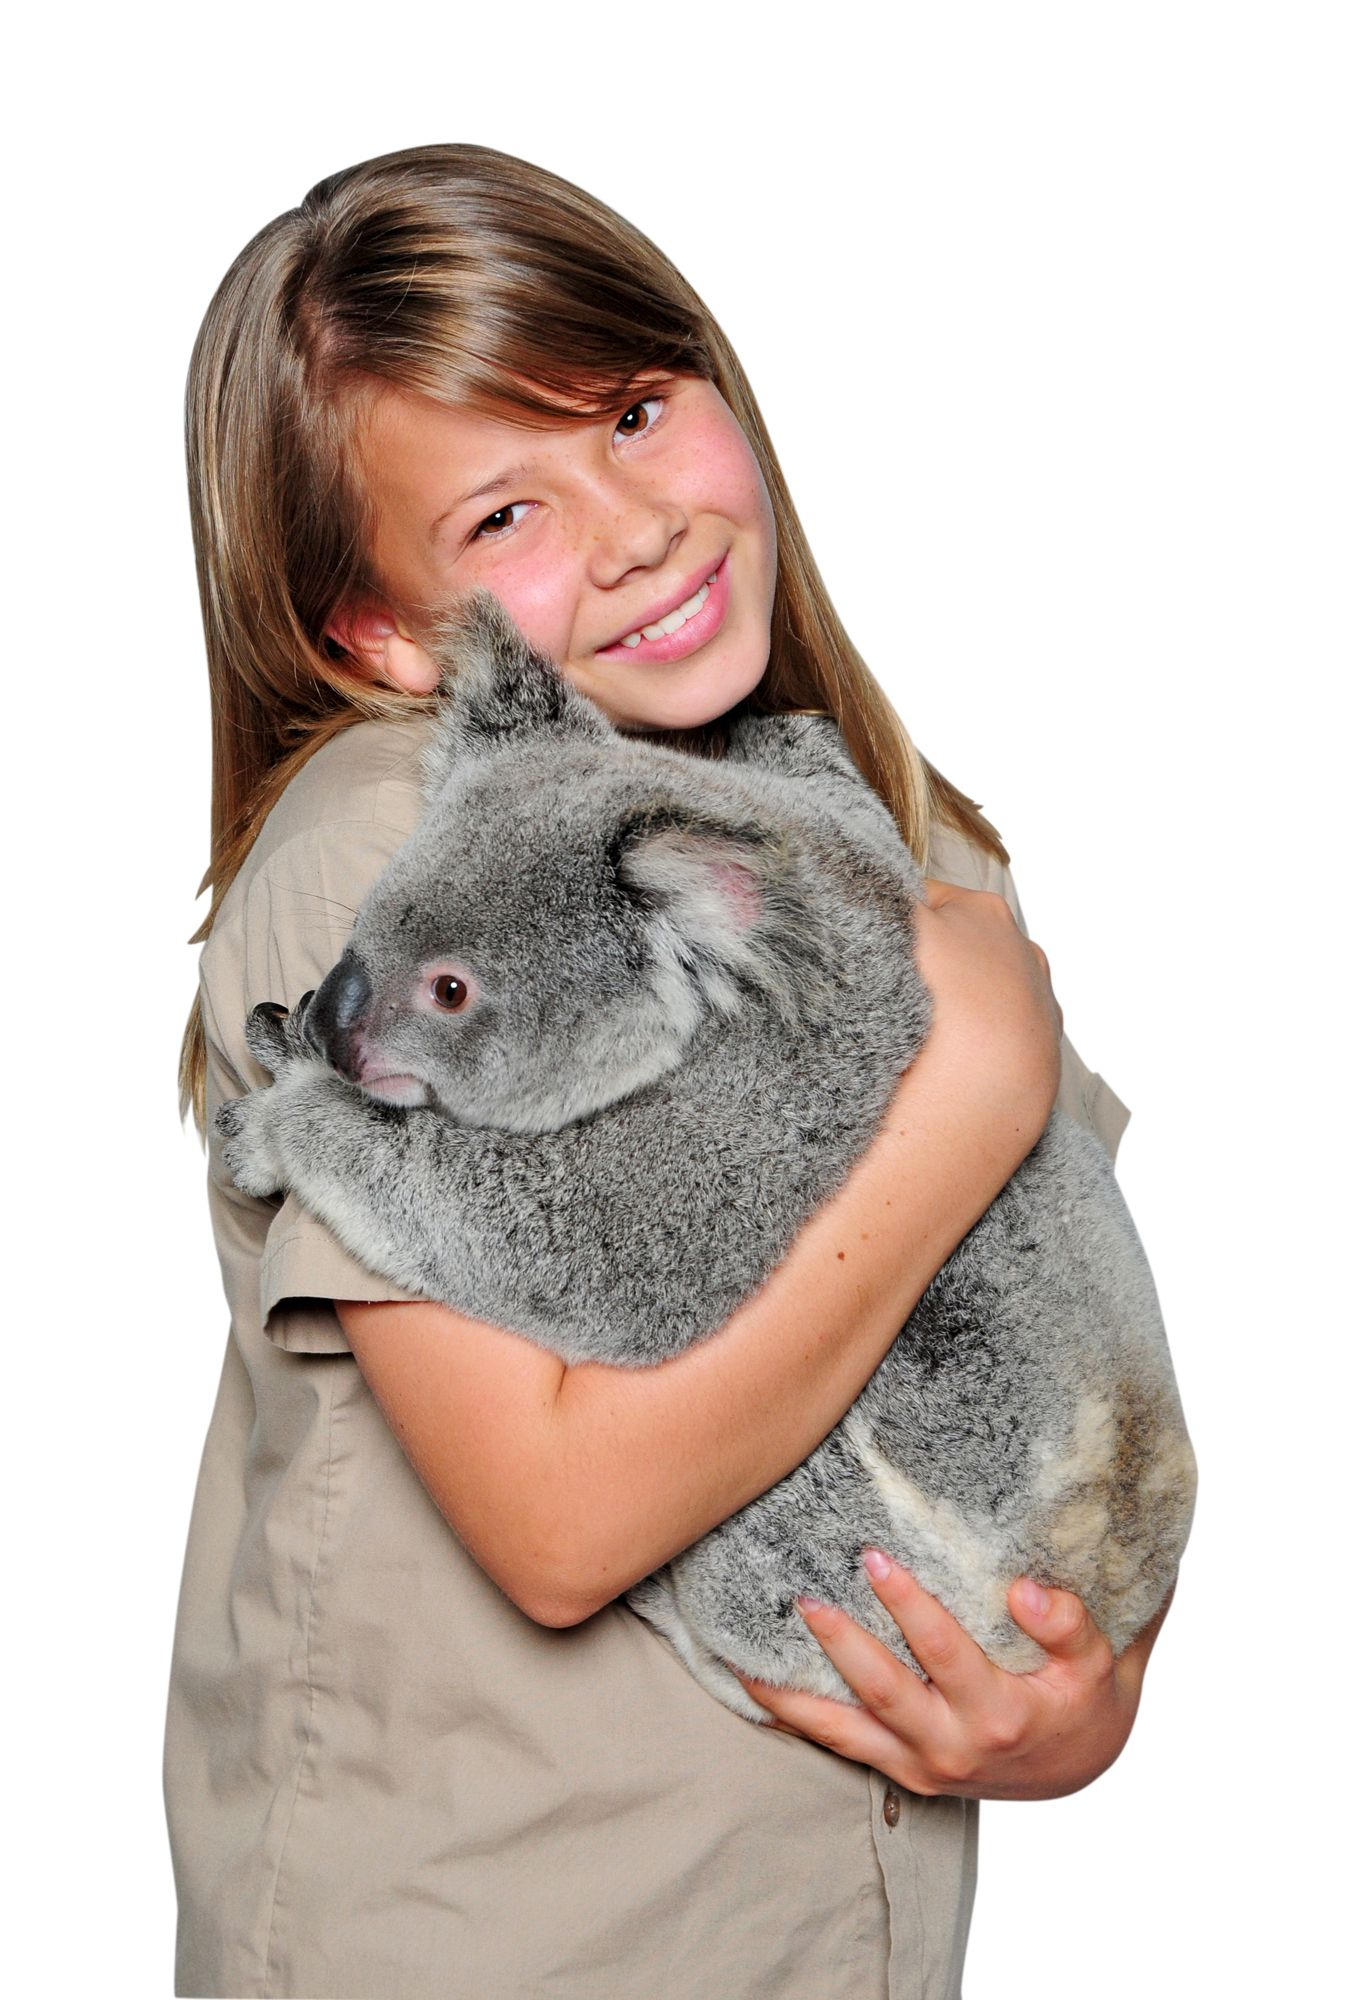 bindi irwin and a koala friend at zoo v e steve bindi irwin and a koala friend at zoo v e